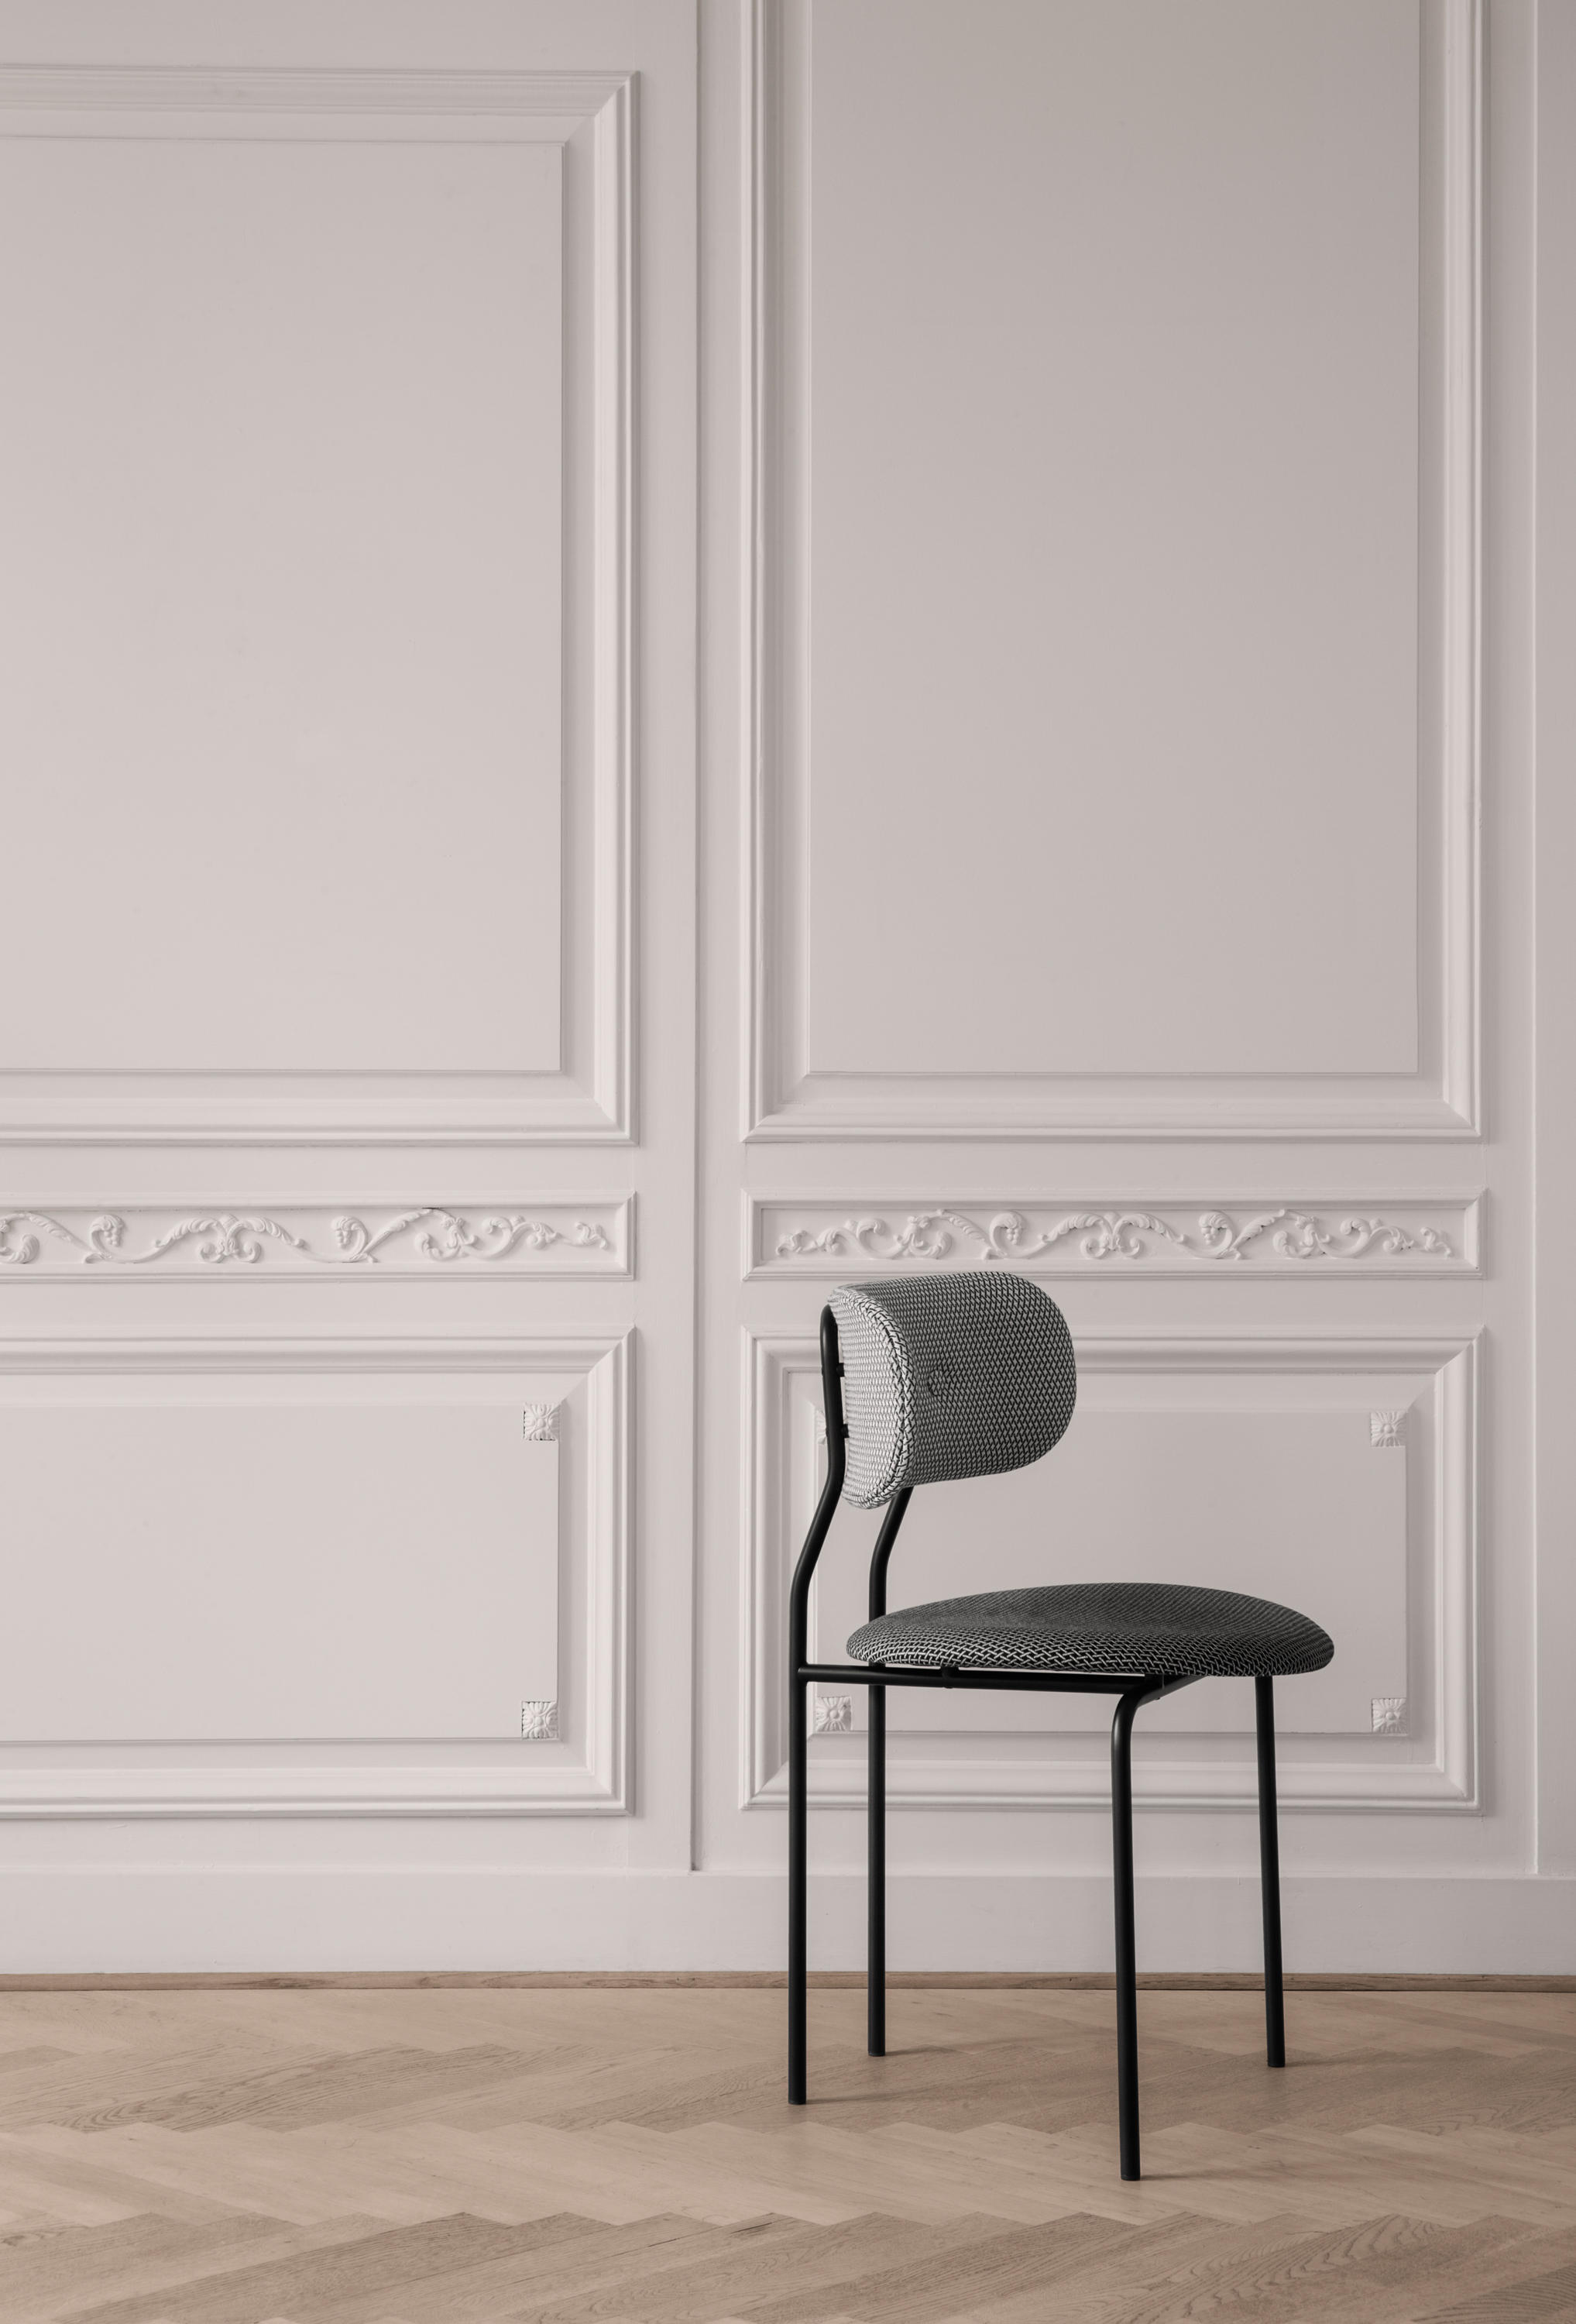 Coco Chair Chairs From Gubi Architonic